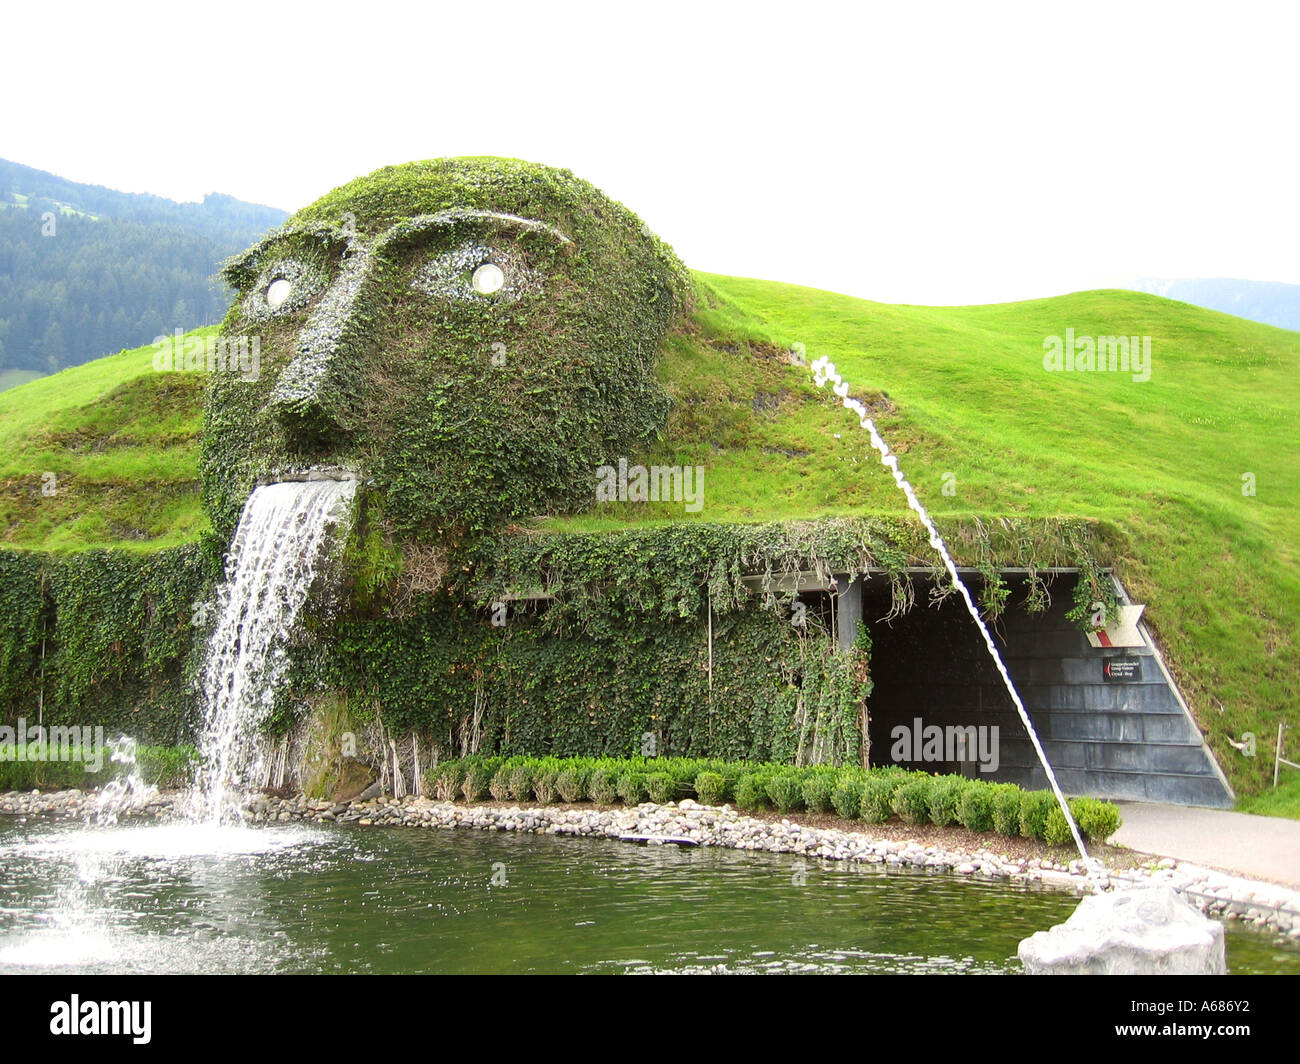 b03c53611bf838 Entrance to Swarovski Crystal World Wattens Tirol Tyrol Austria ...